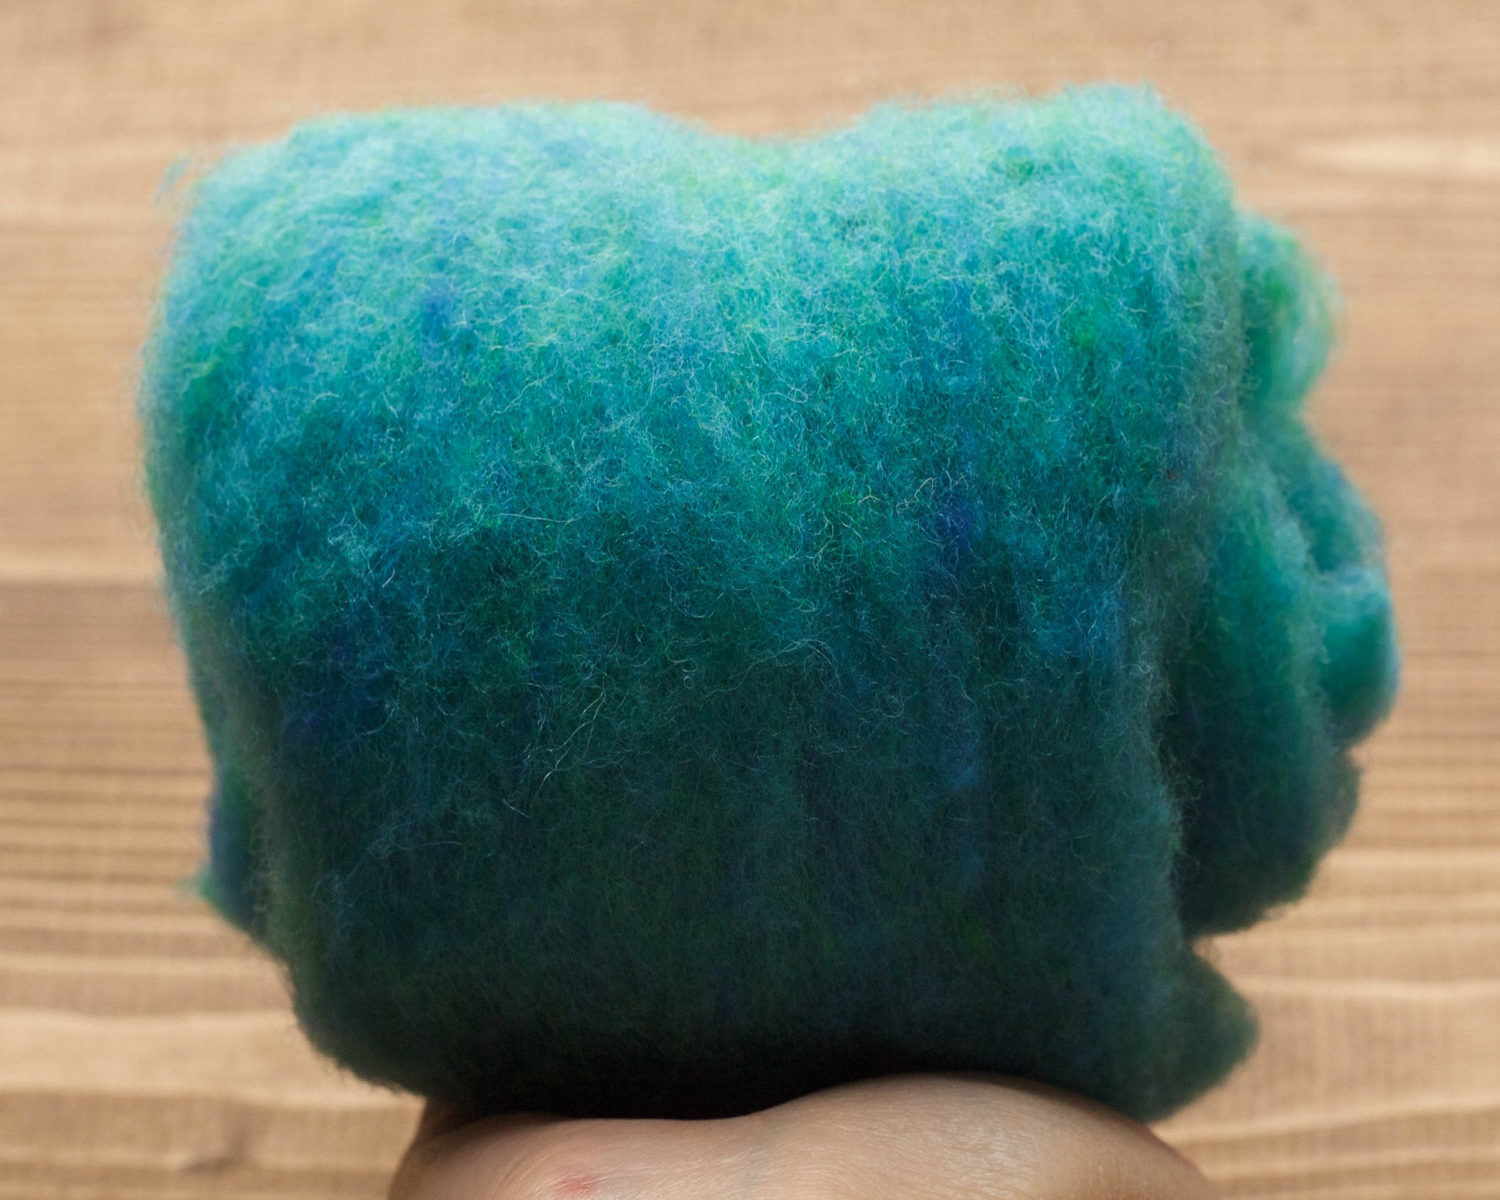 Turquoise Needle Felting Wool, Wool Batting, Batts, Fleece, Wet Felting, Spinning, Dyed Felting Wool, Blue Green, Teal, Fiber Art Supplies